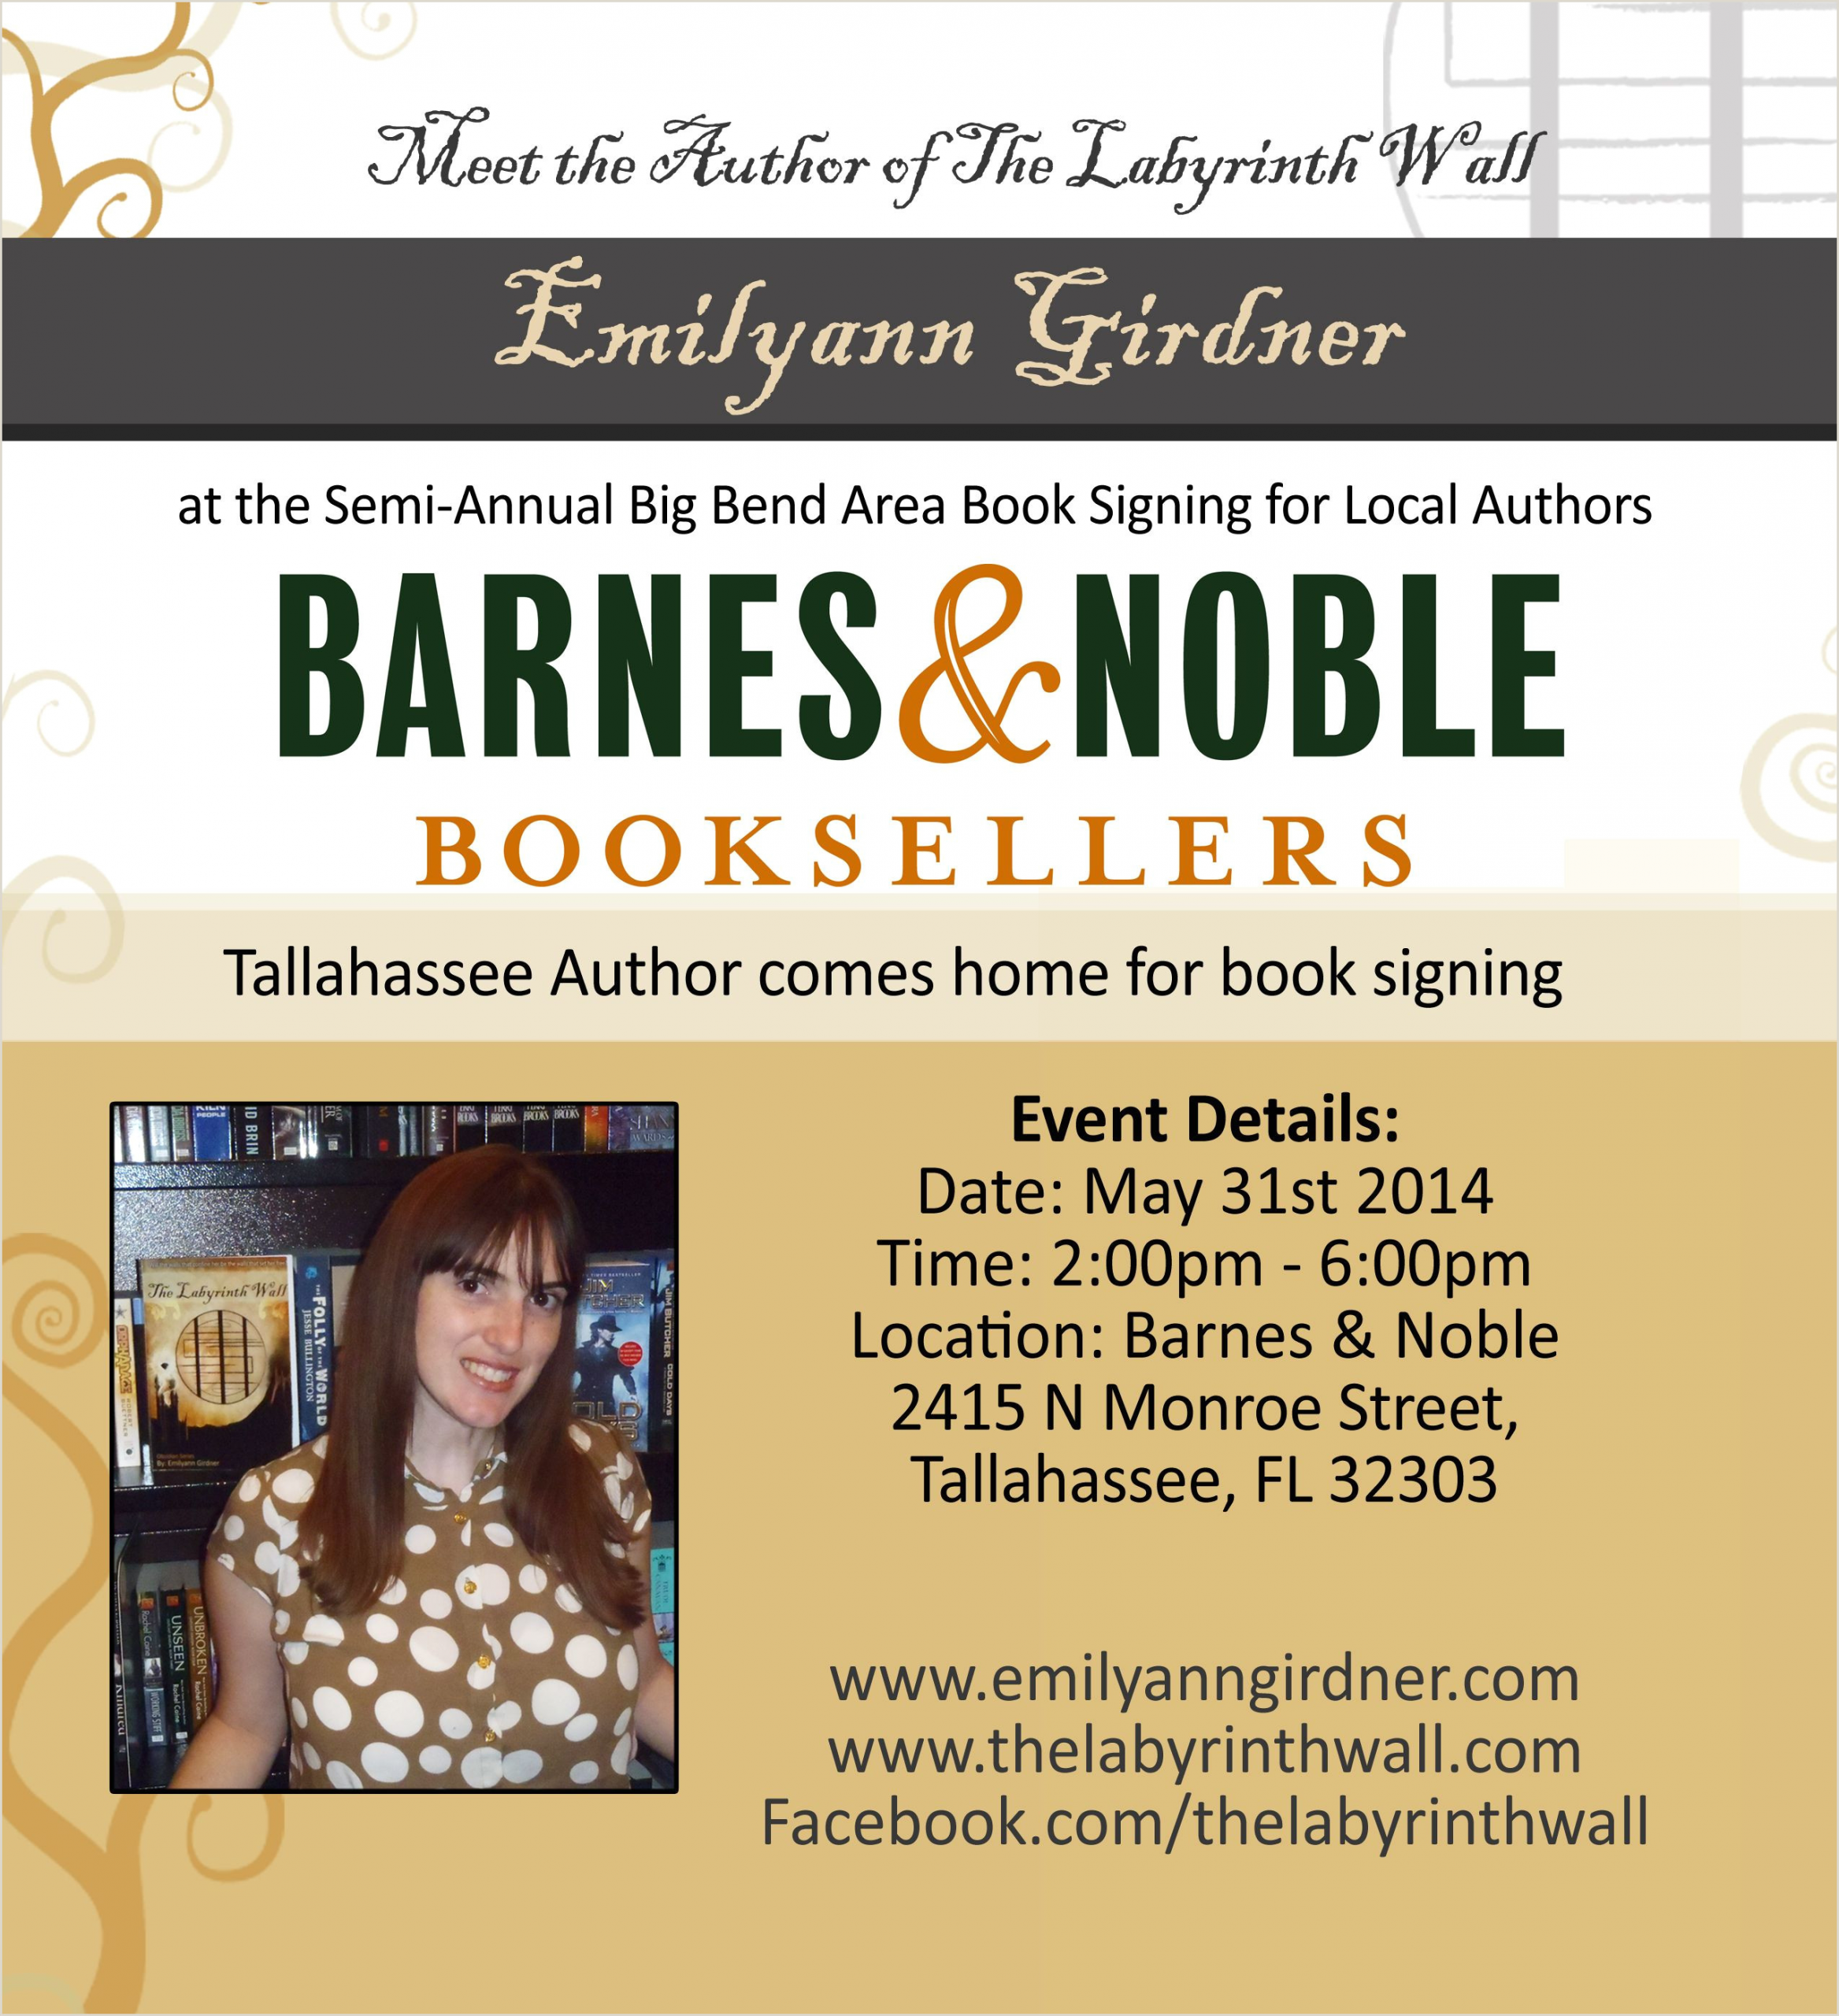 Book Signing Poster Examples Author Book Signing Posters